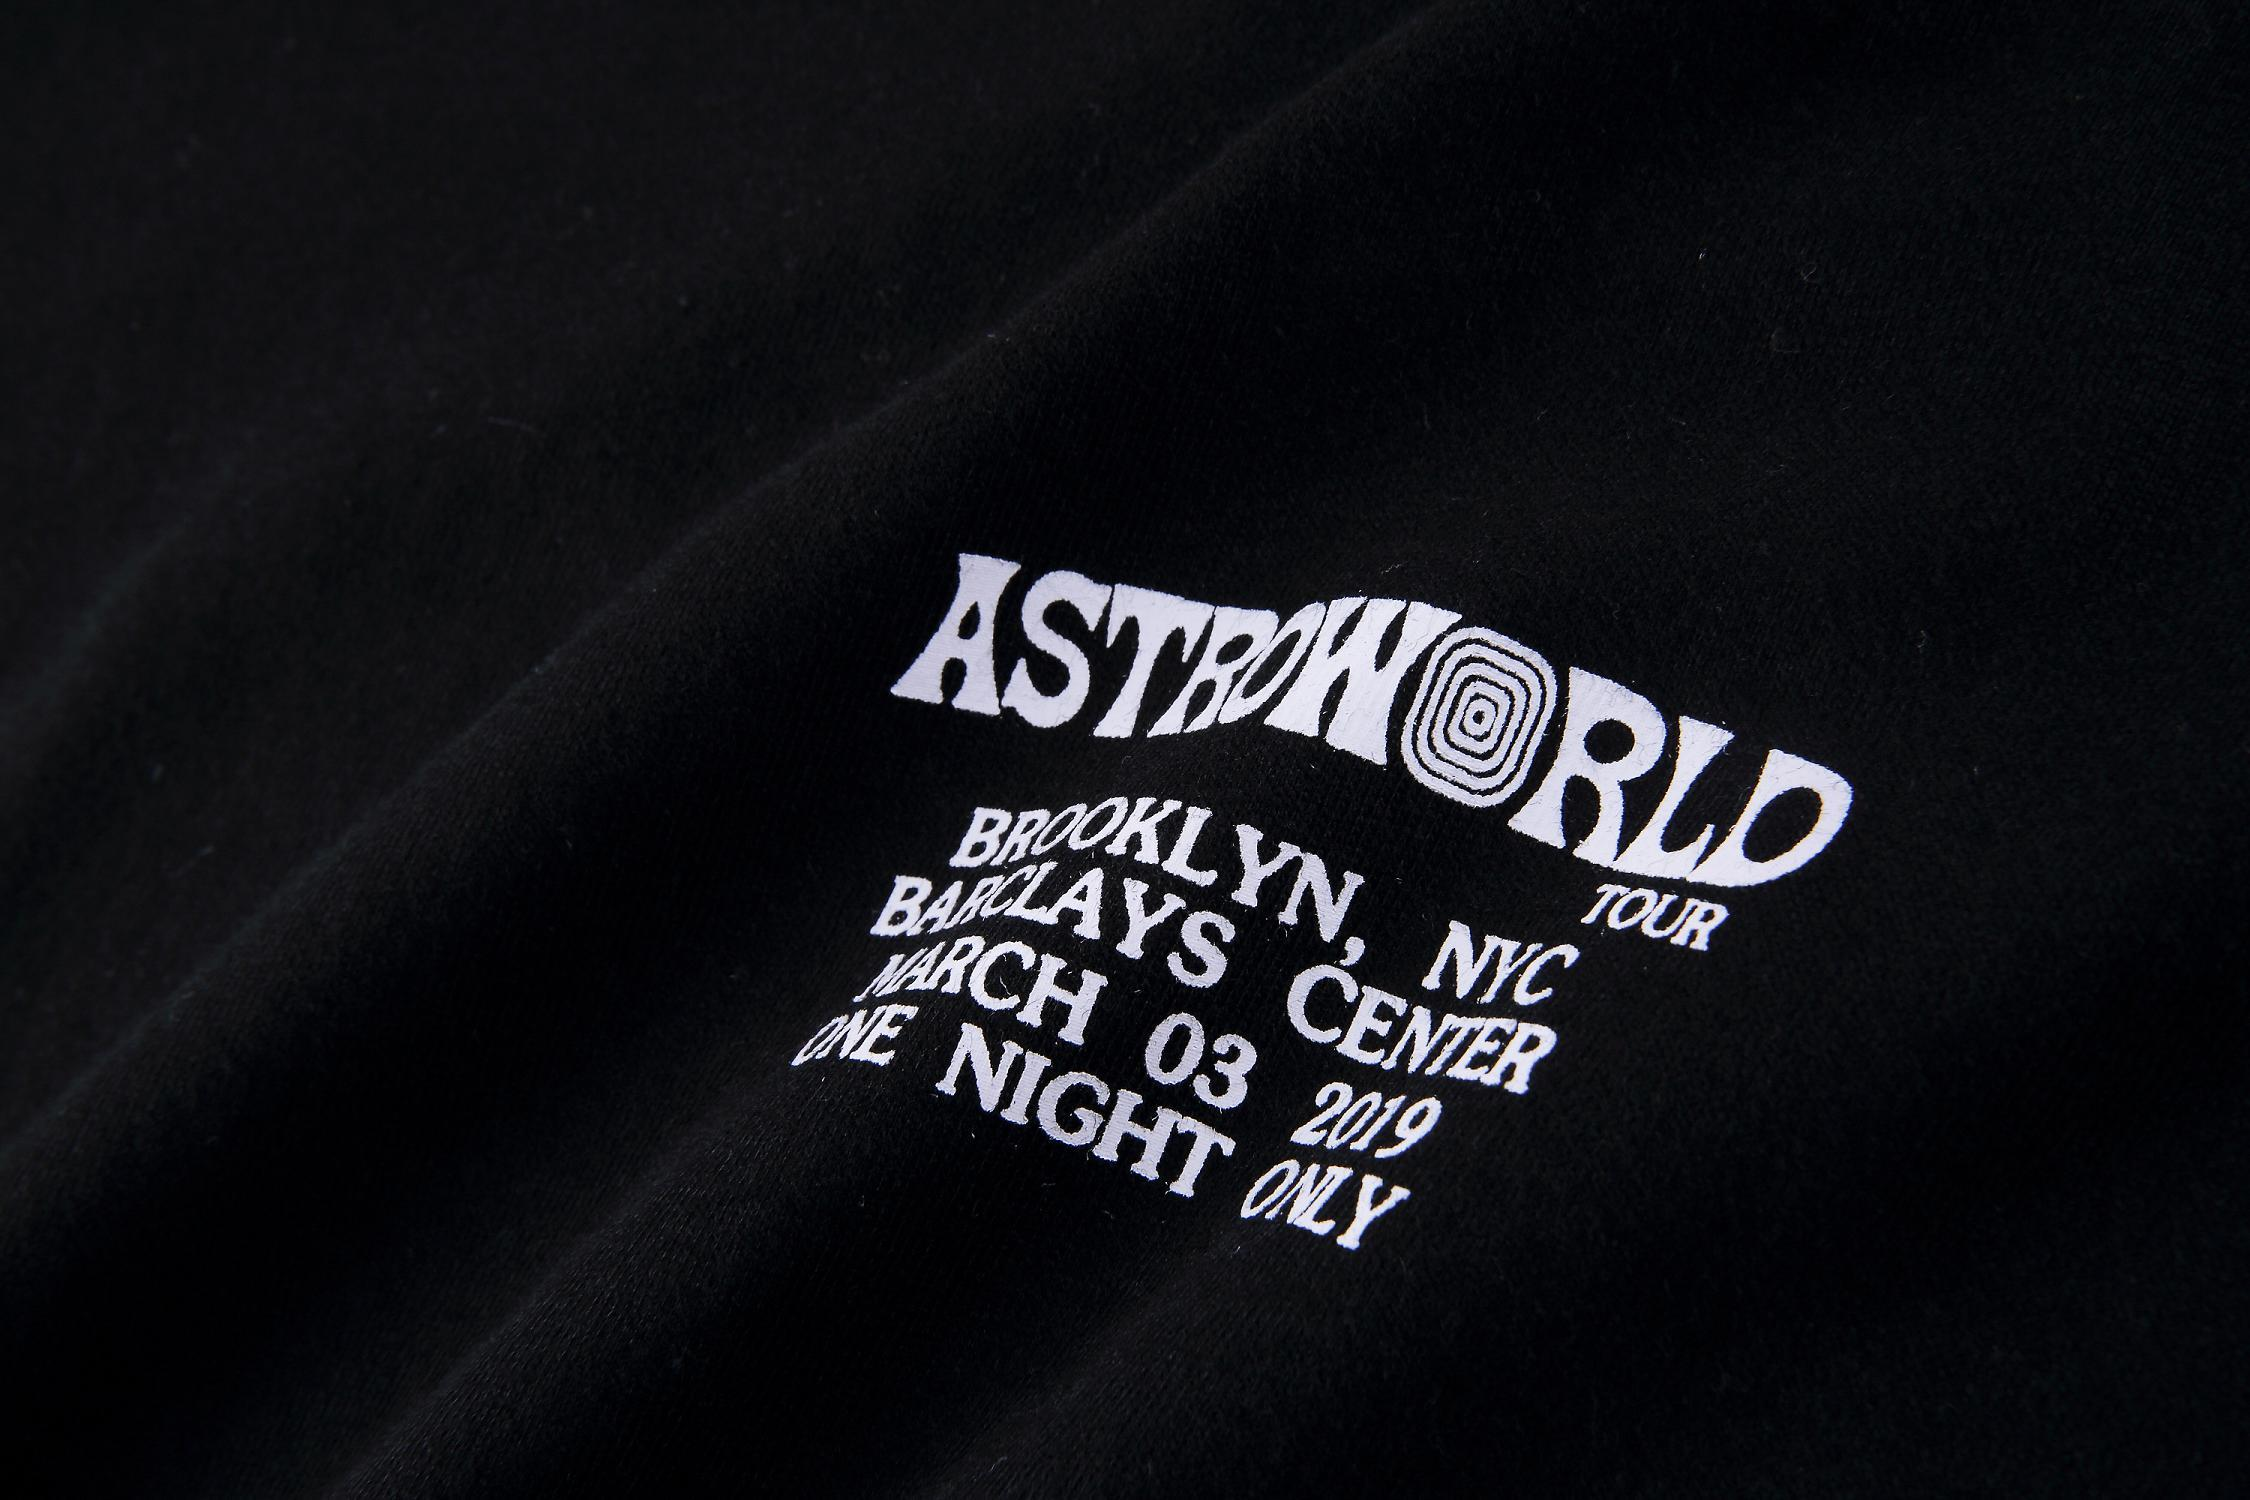 One Night Brooklyn NYC Shirt (Best Selling) 🔥 - AstroWorlds Merch【Limited Collection 】